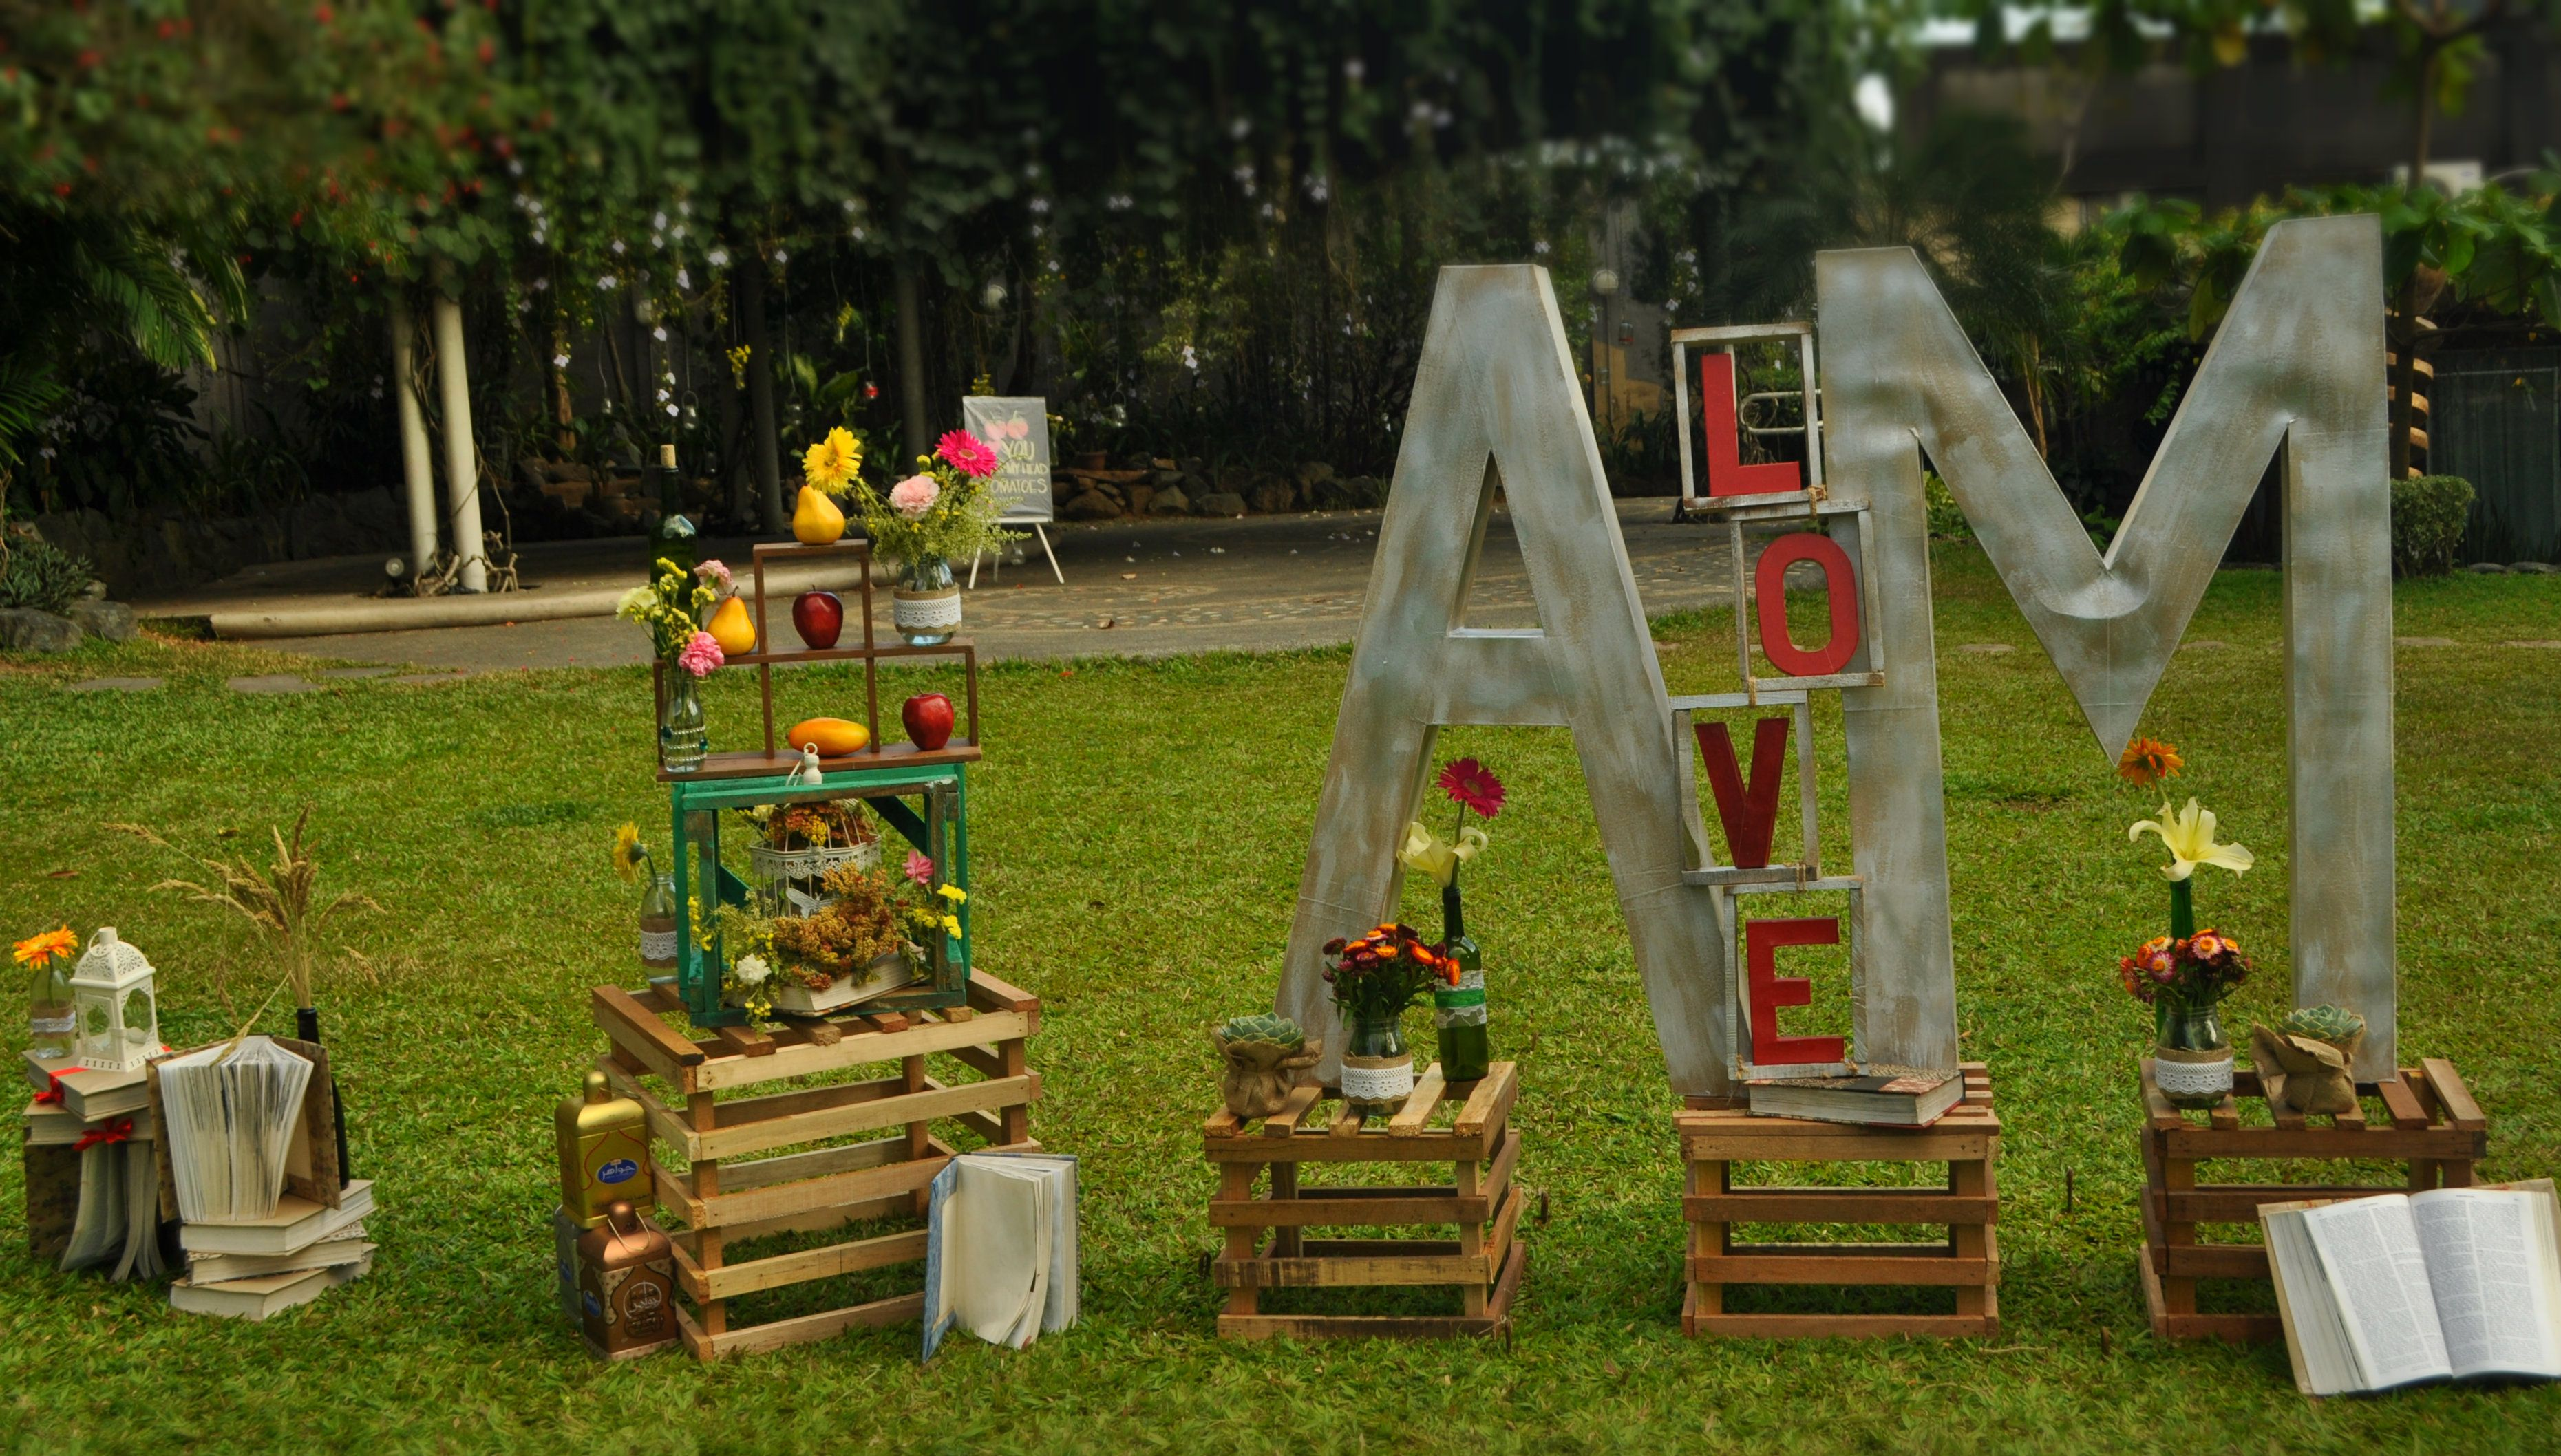 life size letter standee at the garden 09158266161